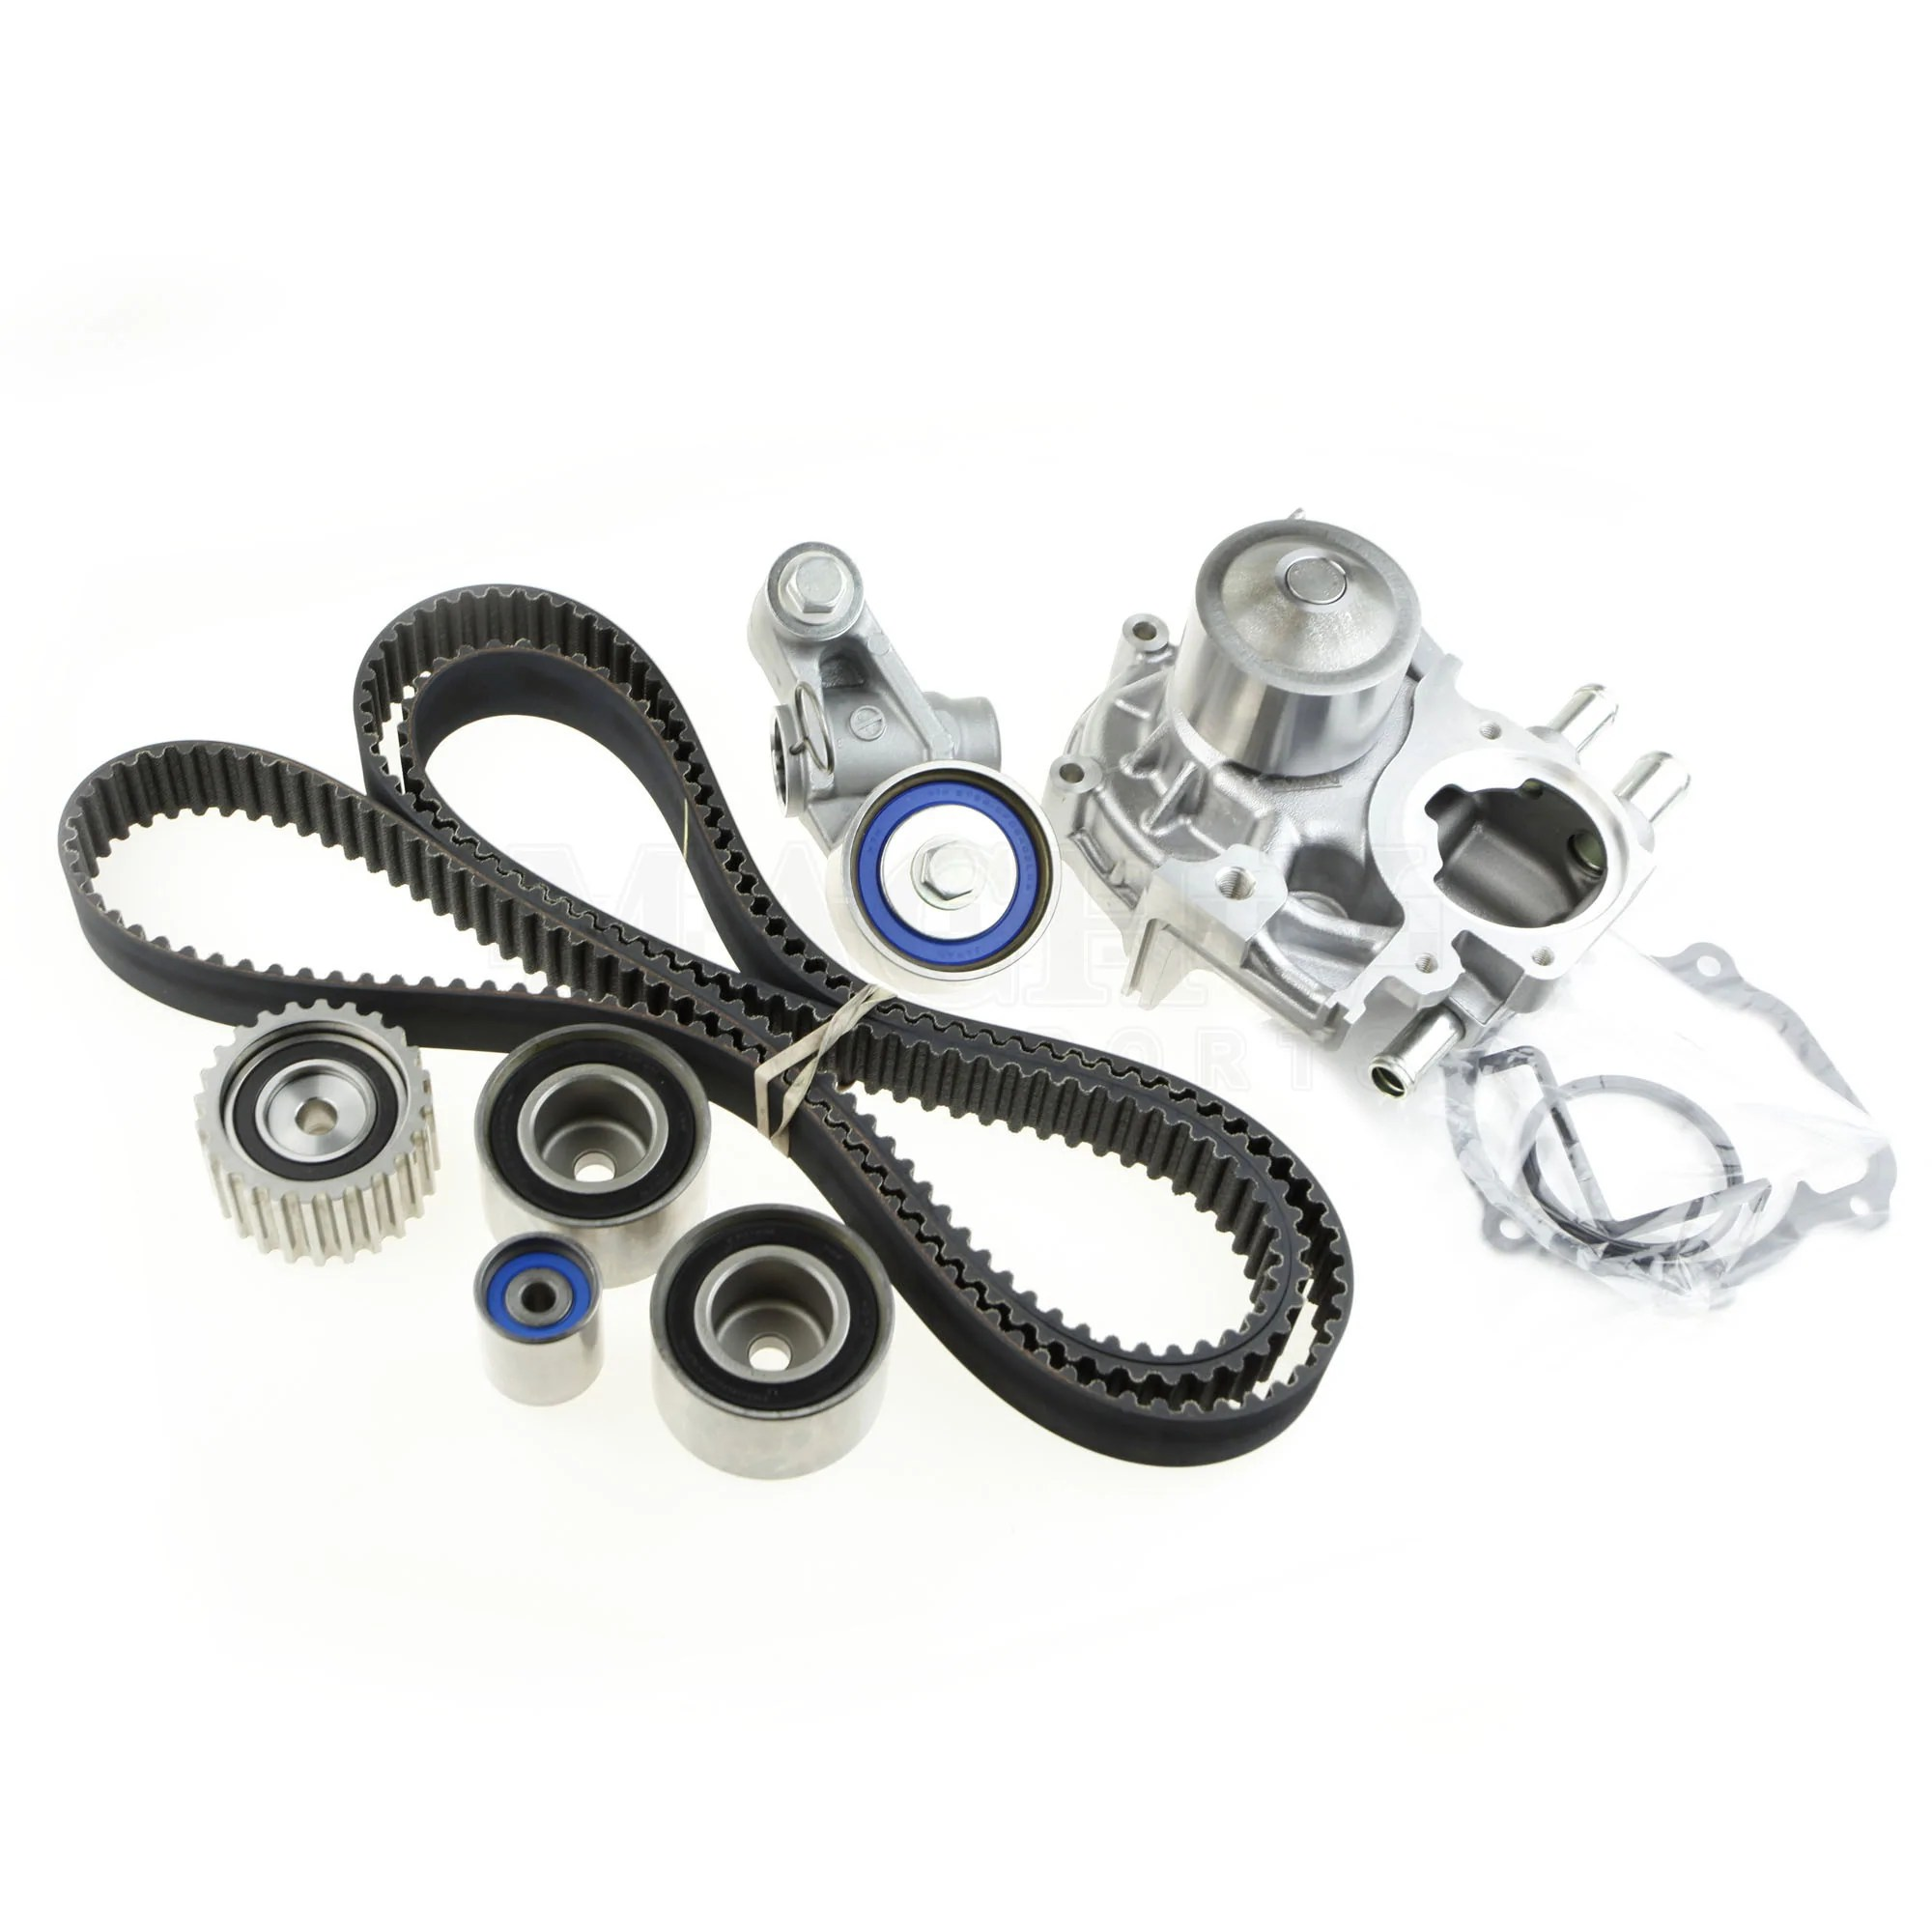 oem quality timing belt kit with water pump 2008 2014 wrx [ 2000 x 2000 Pixel ]